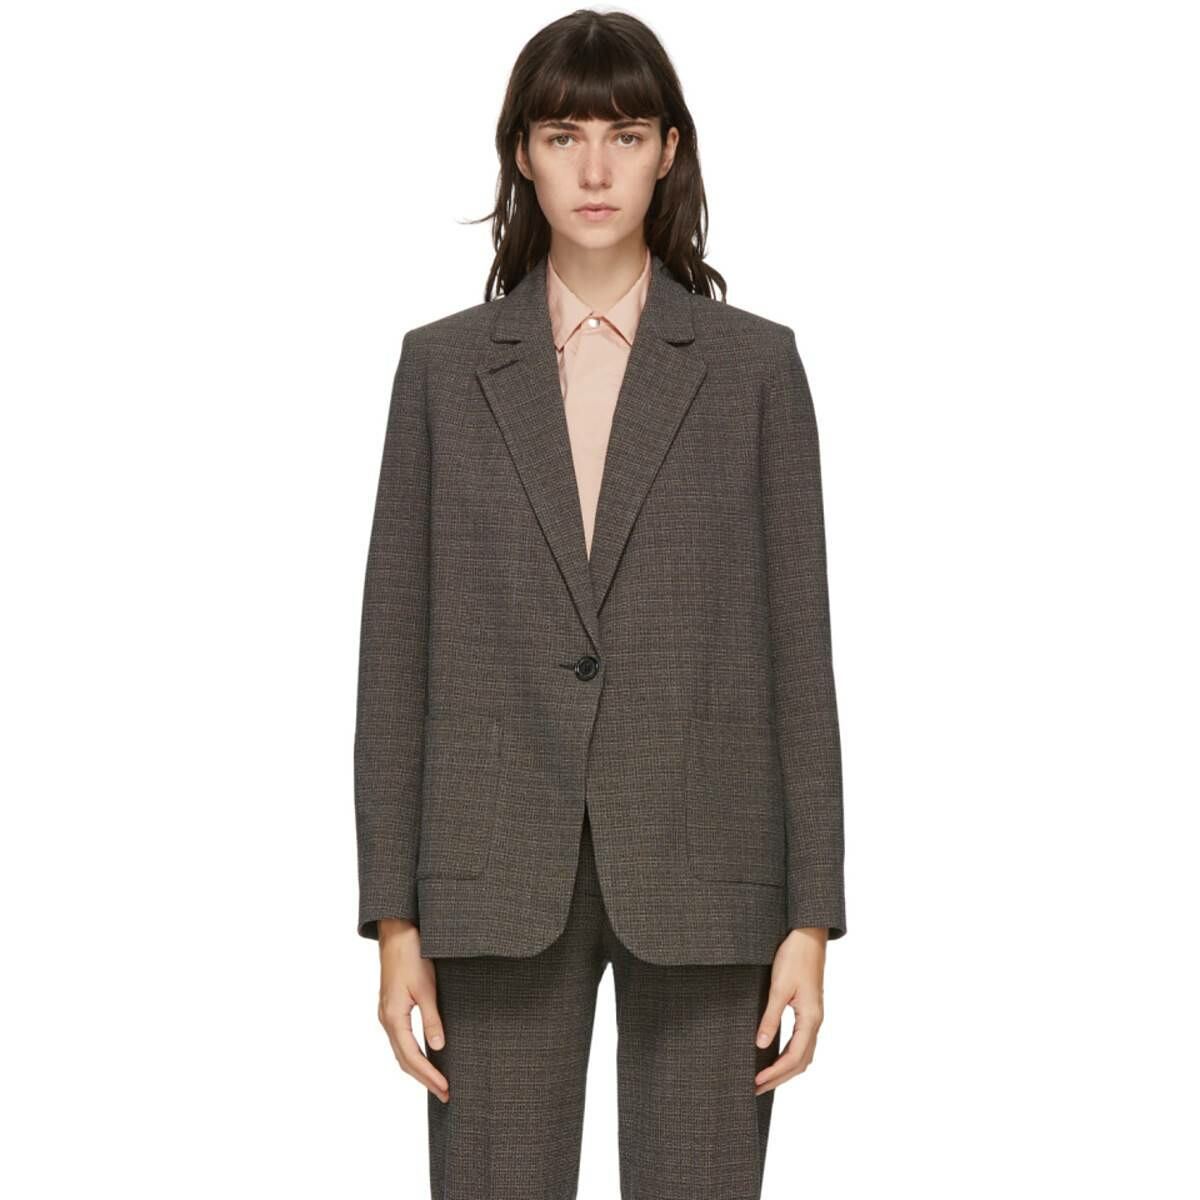 Won Hundred Brown Linda Blazer Ssense USA WOMEN Women FASHION Womens BLAZER